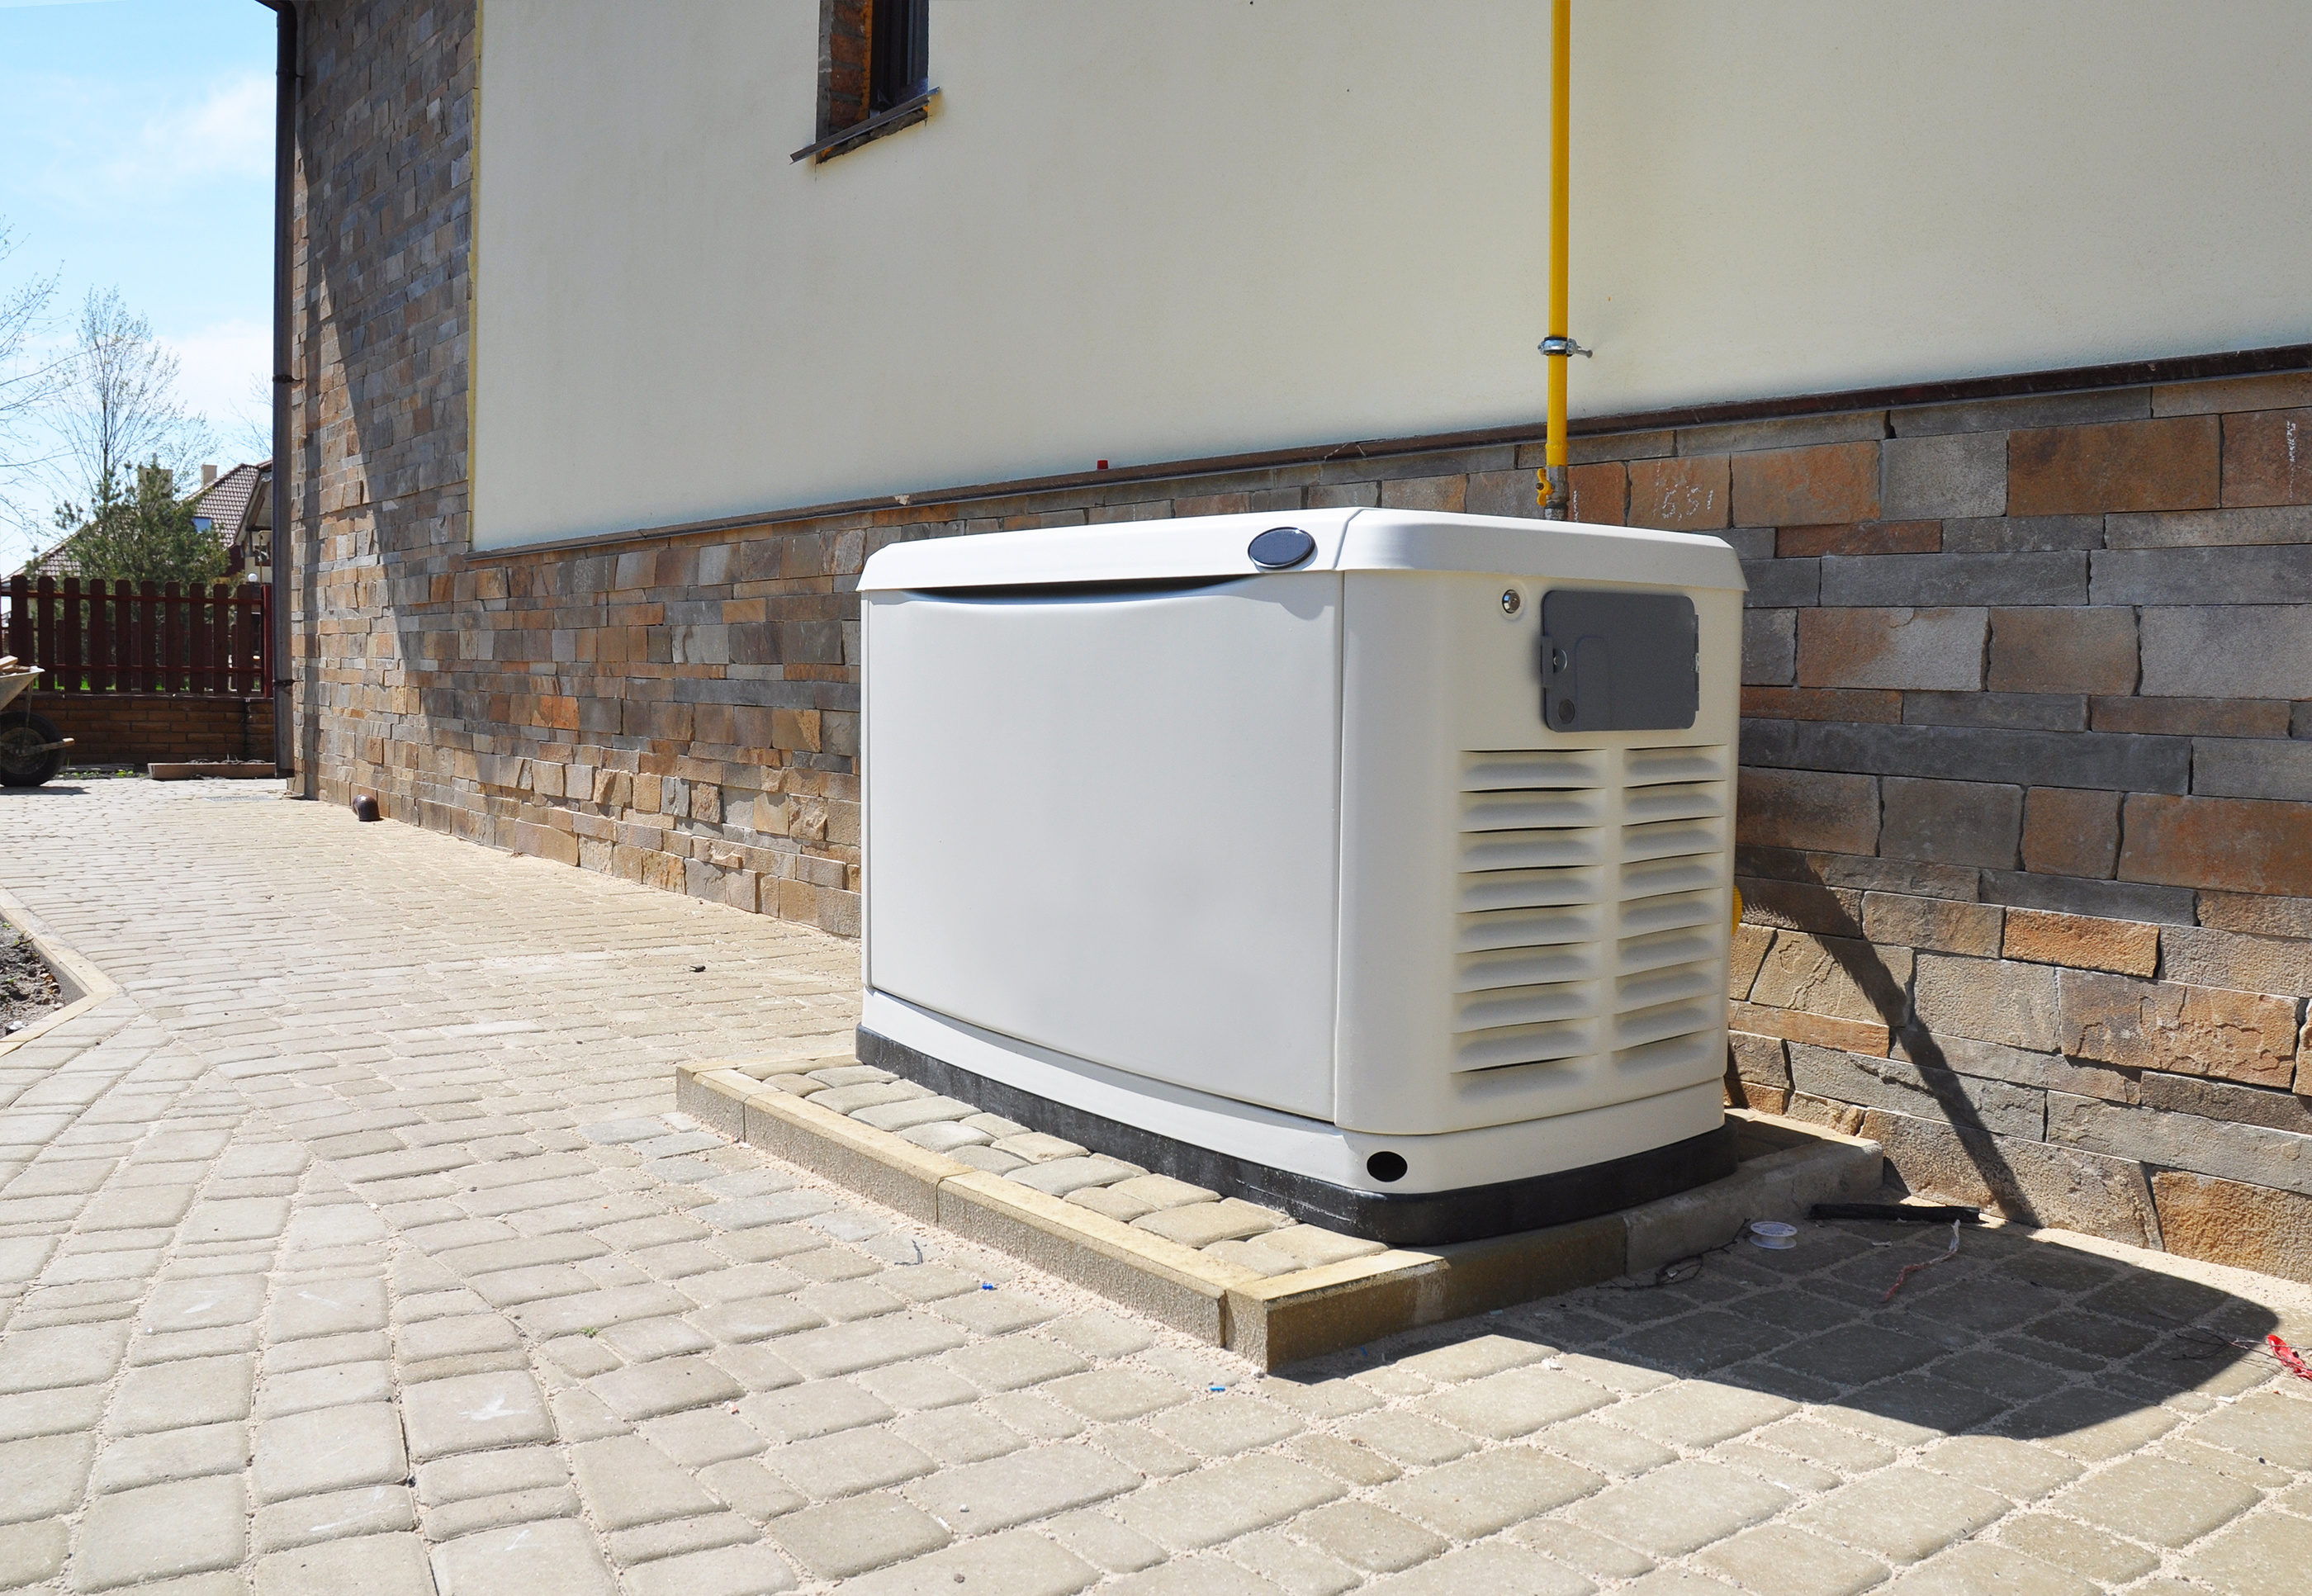 Propane-powered standby generator next to the exterior of a building.